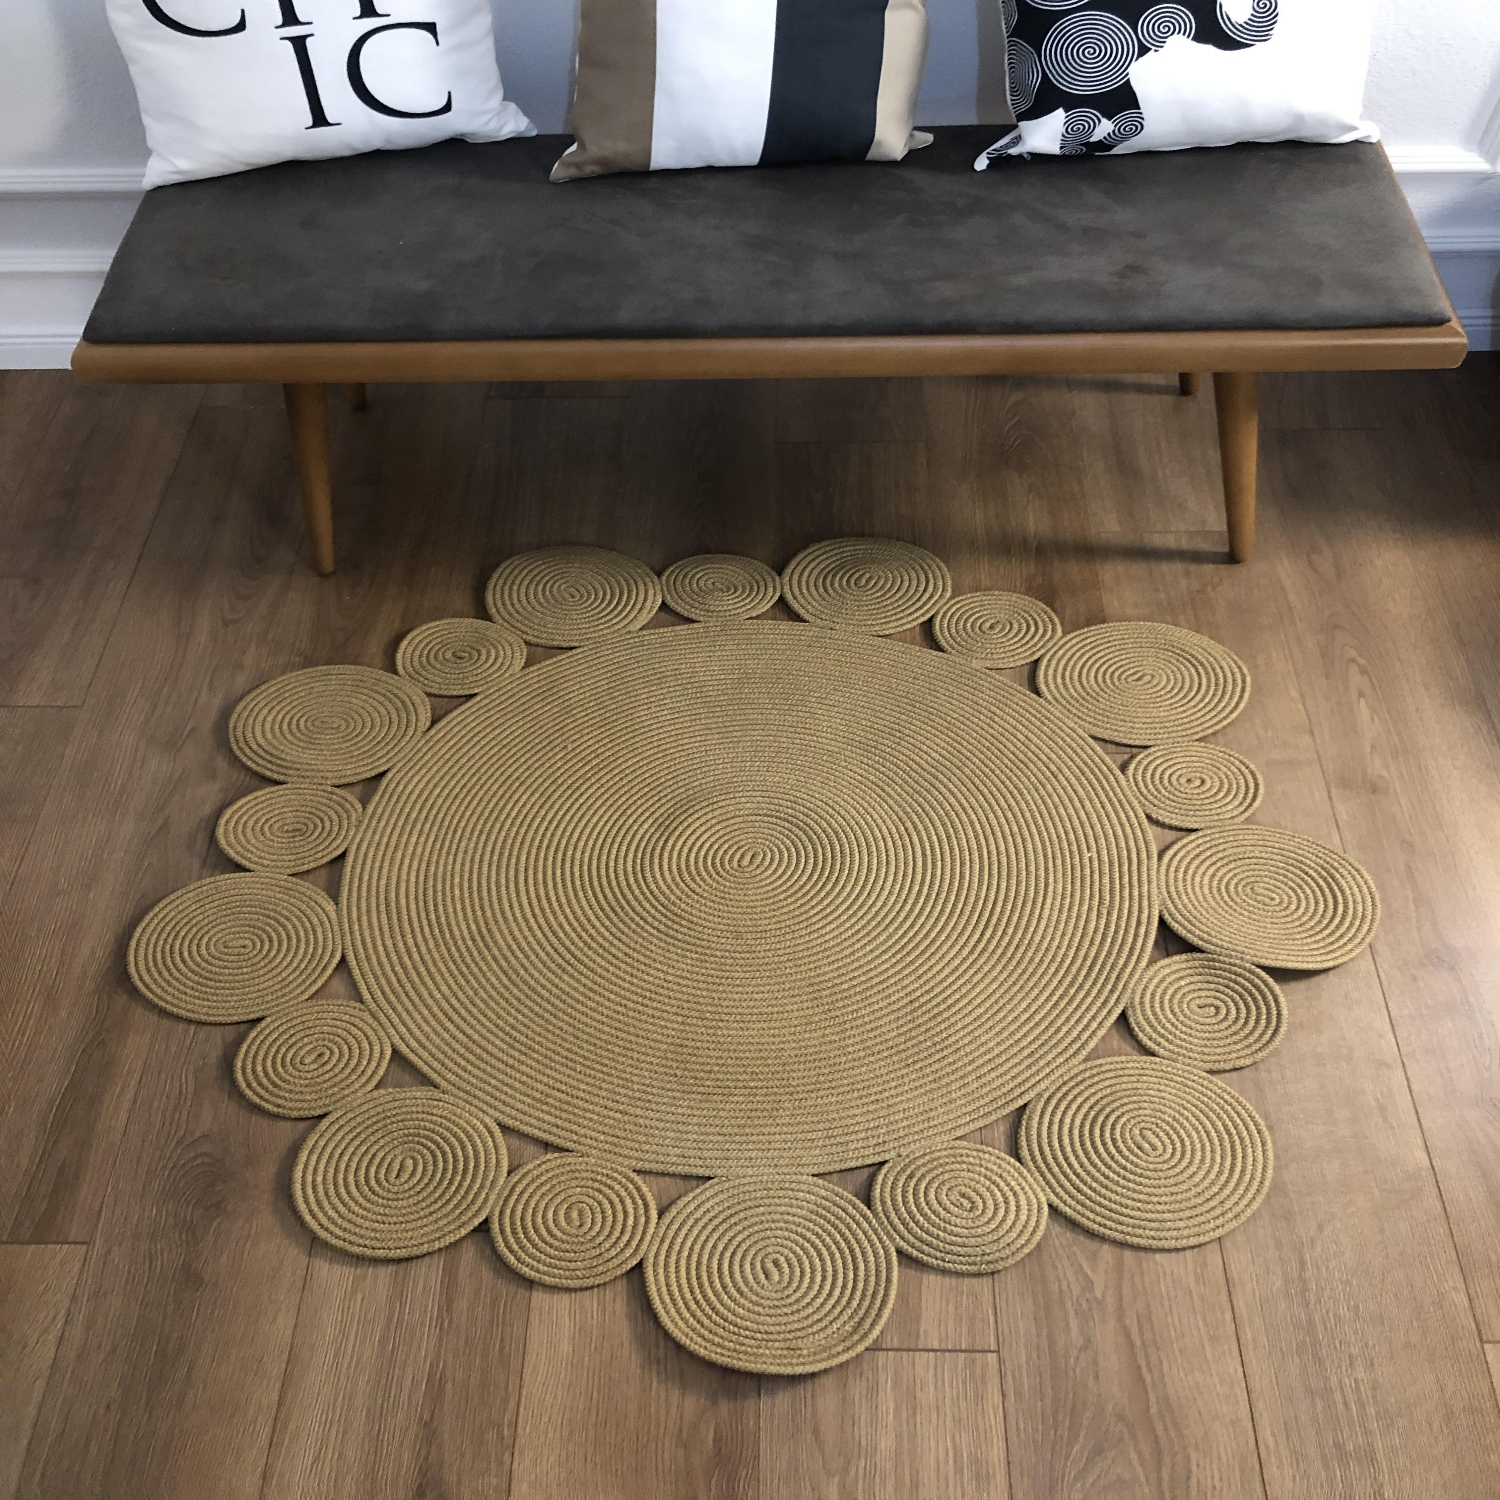 Else Round Natural Jute Carpet Sisal Nomad Natural Fiber Collection Hand Woven Natural Jute Area Rug For Home Living Room